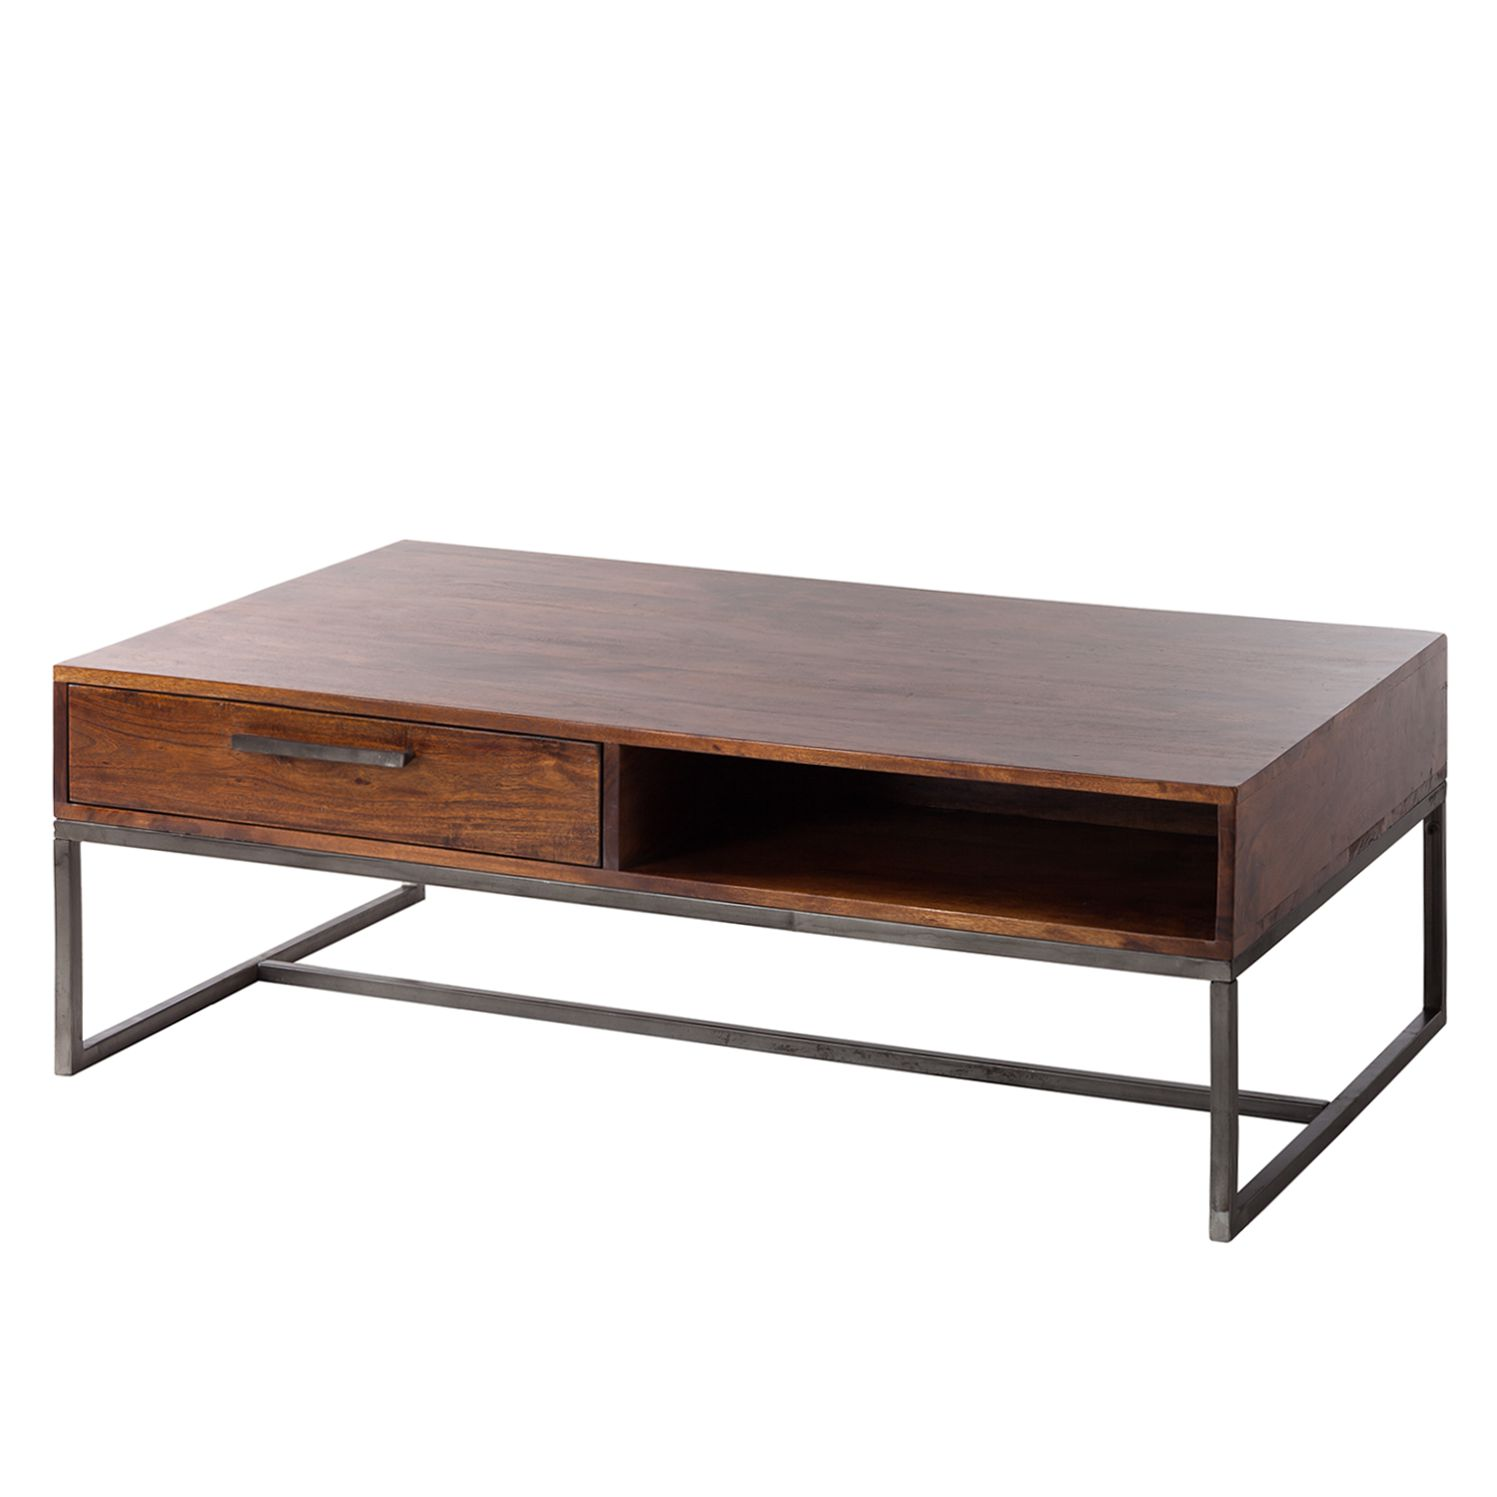 Table basse Woodson II